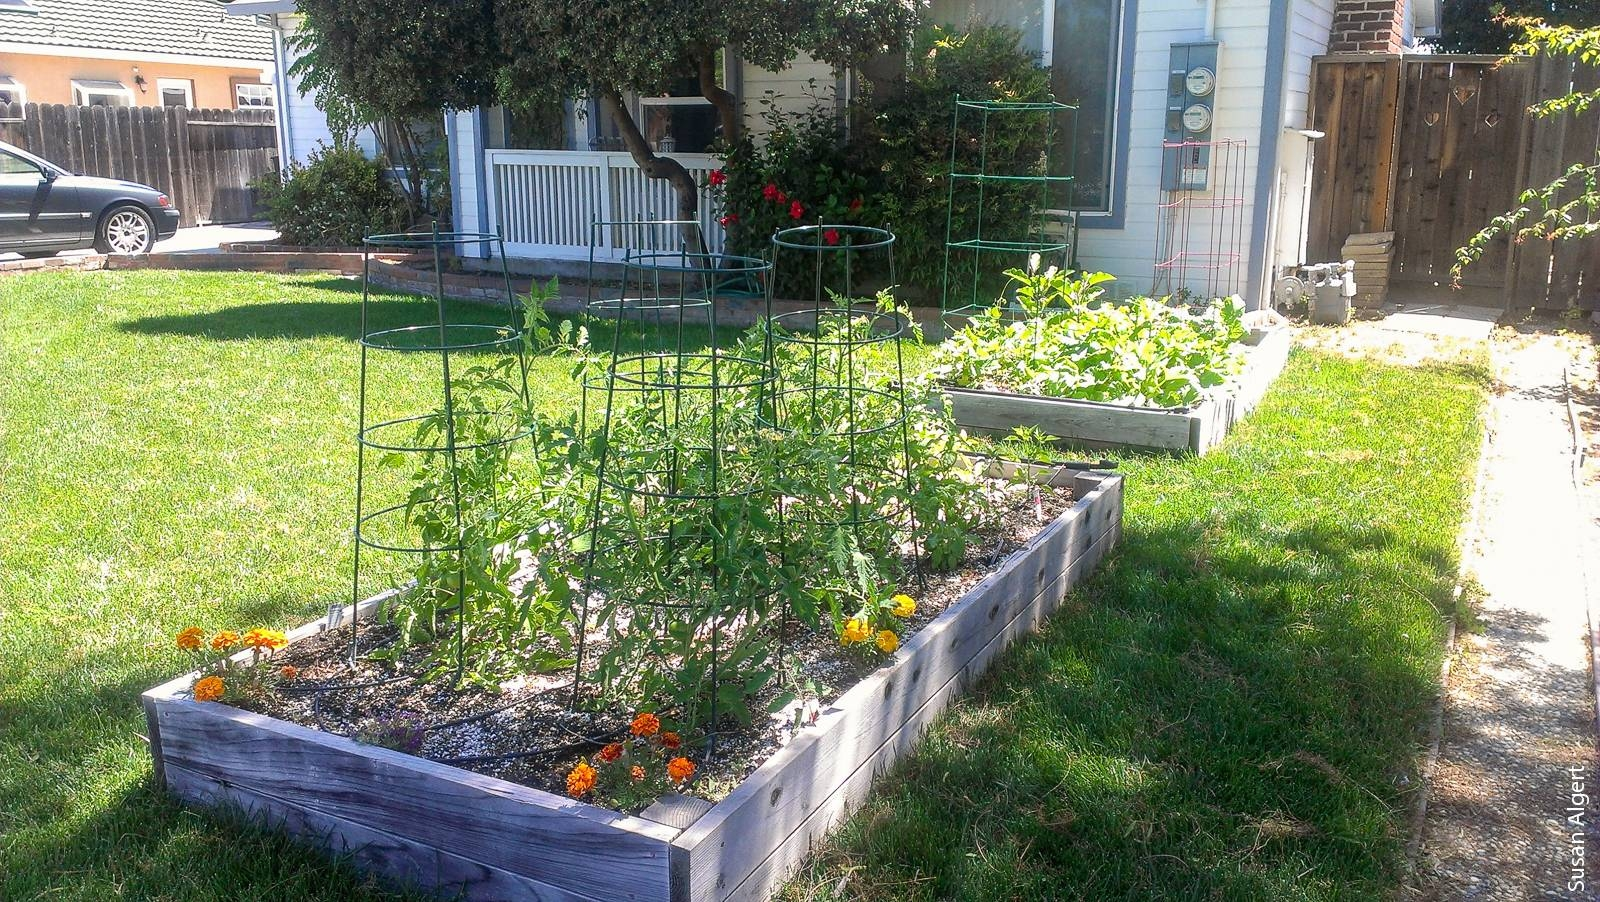 Home produce garden - Snap Benefits Can Be Used To Purchase Seeds And Plants To Grow Produce